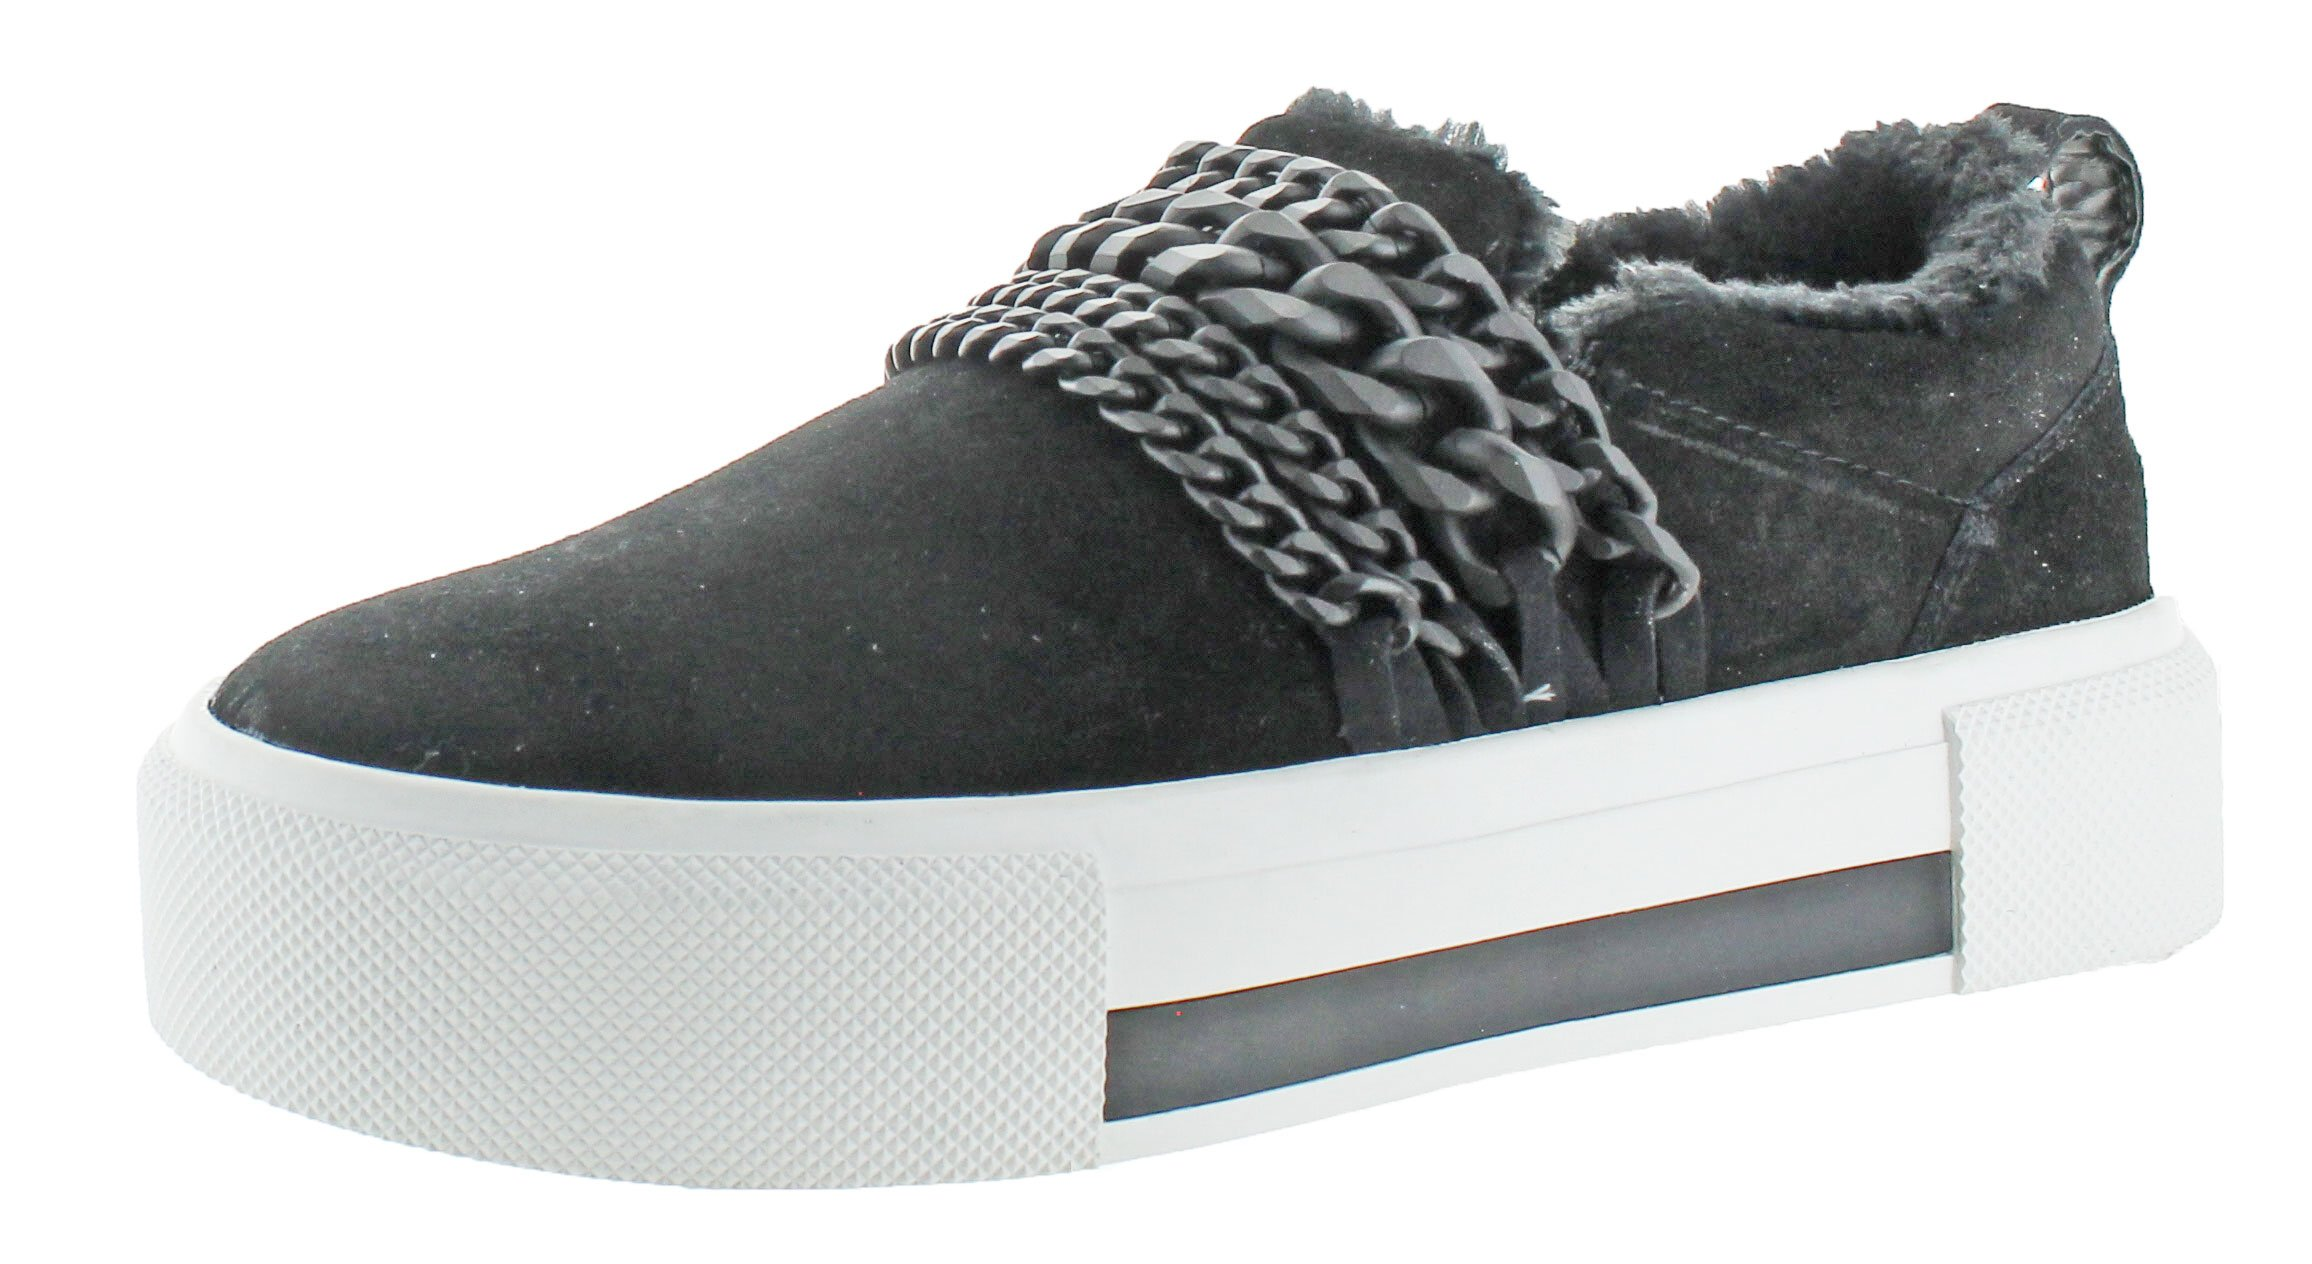 KENDALL + KYLIE Women's Tory Black Suede 6.5 M US